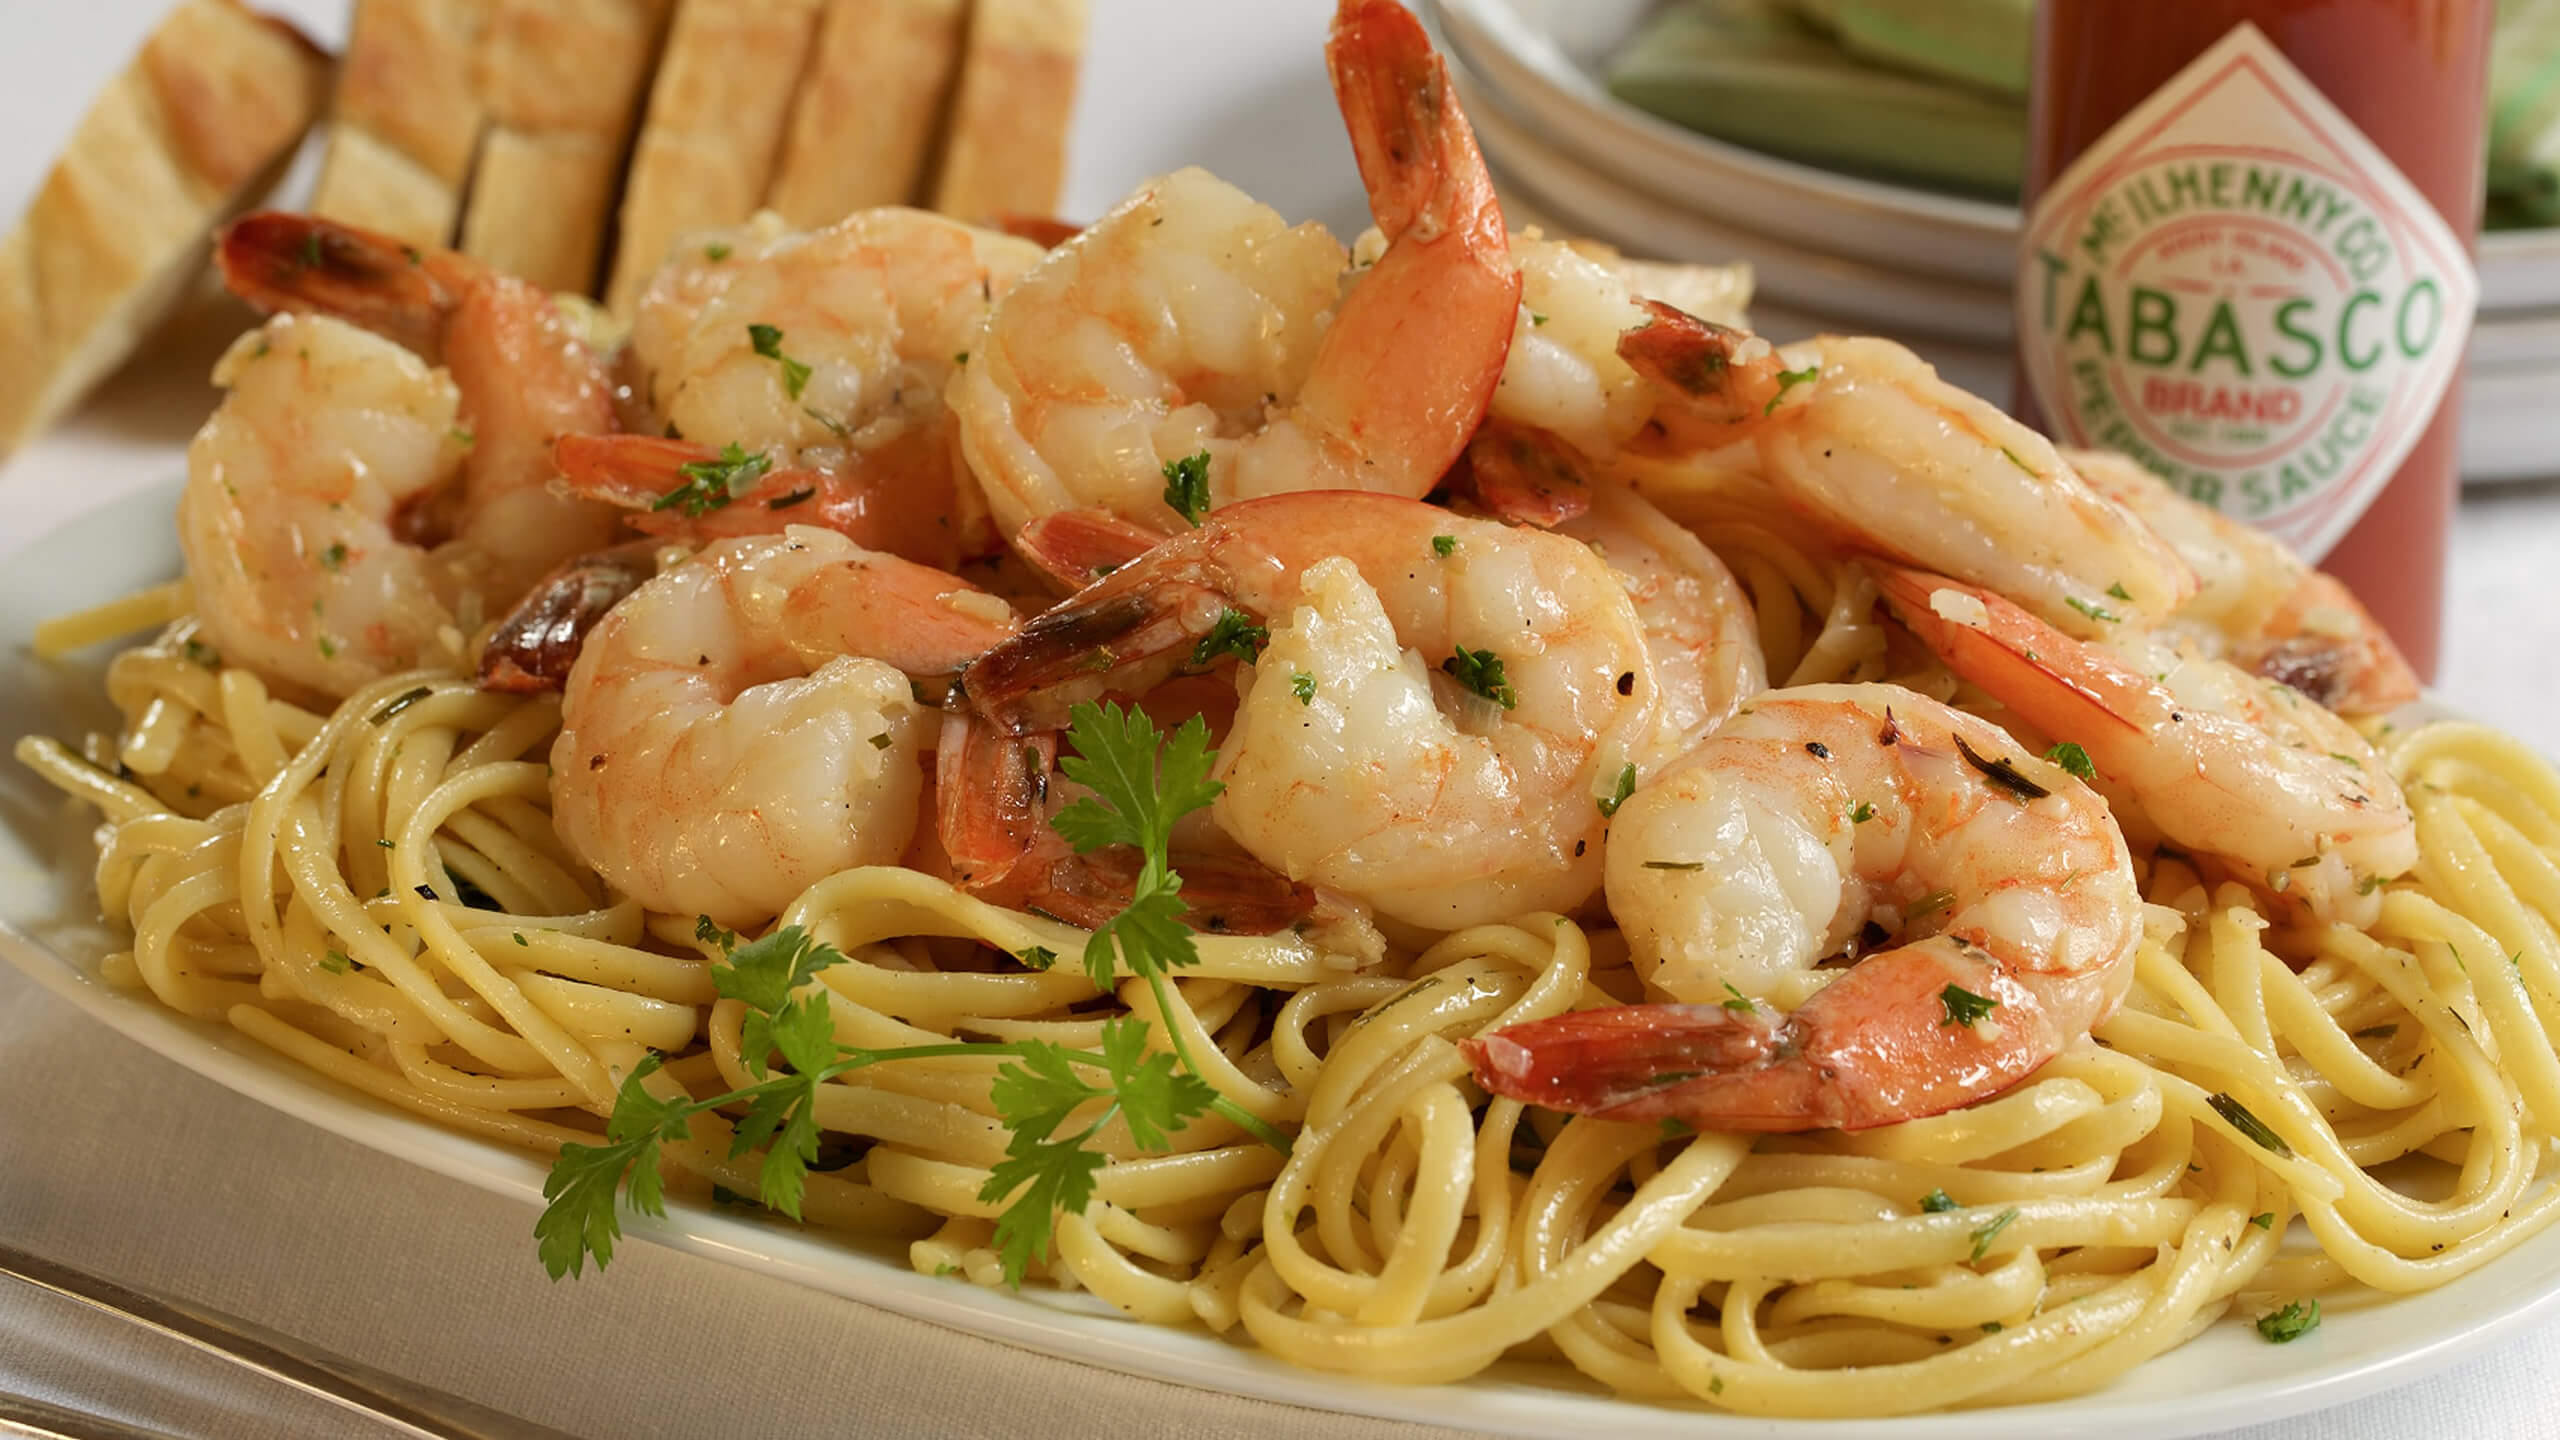 Lemon-Garlic Shrimp Scampi with Linguine